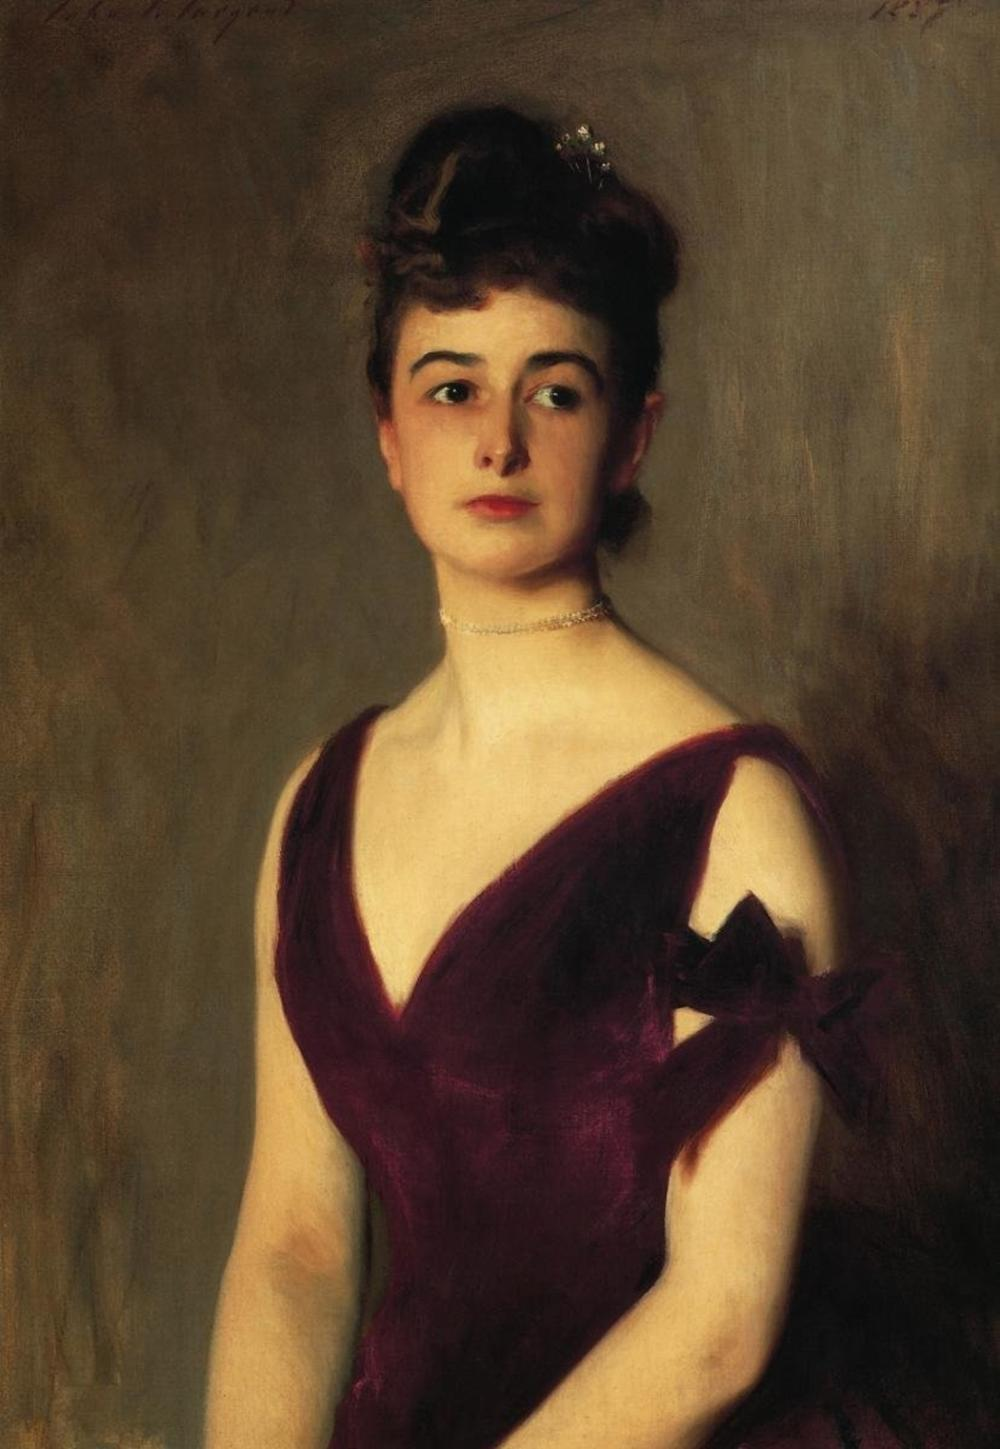 JOHN SINGER SARGENT - MRS CHARLES E INCHES LOUISE POMEROY